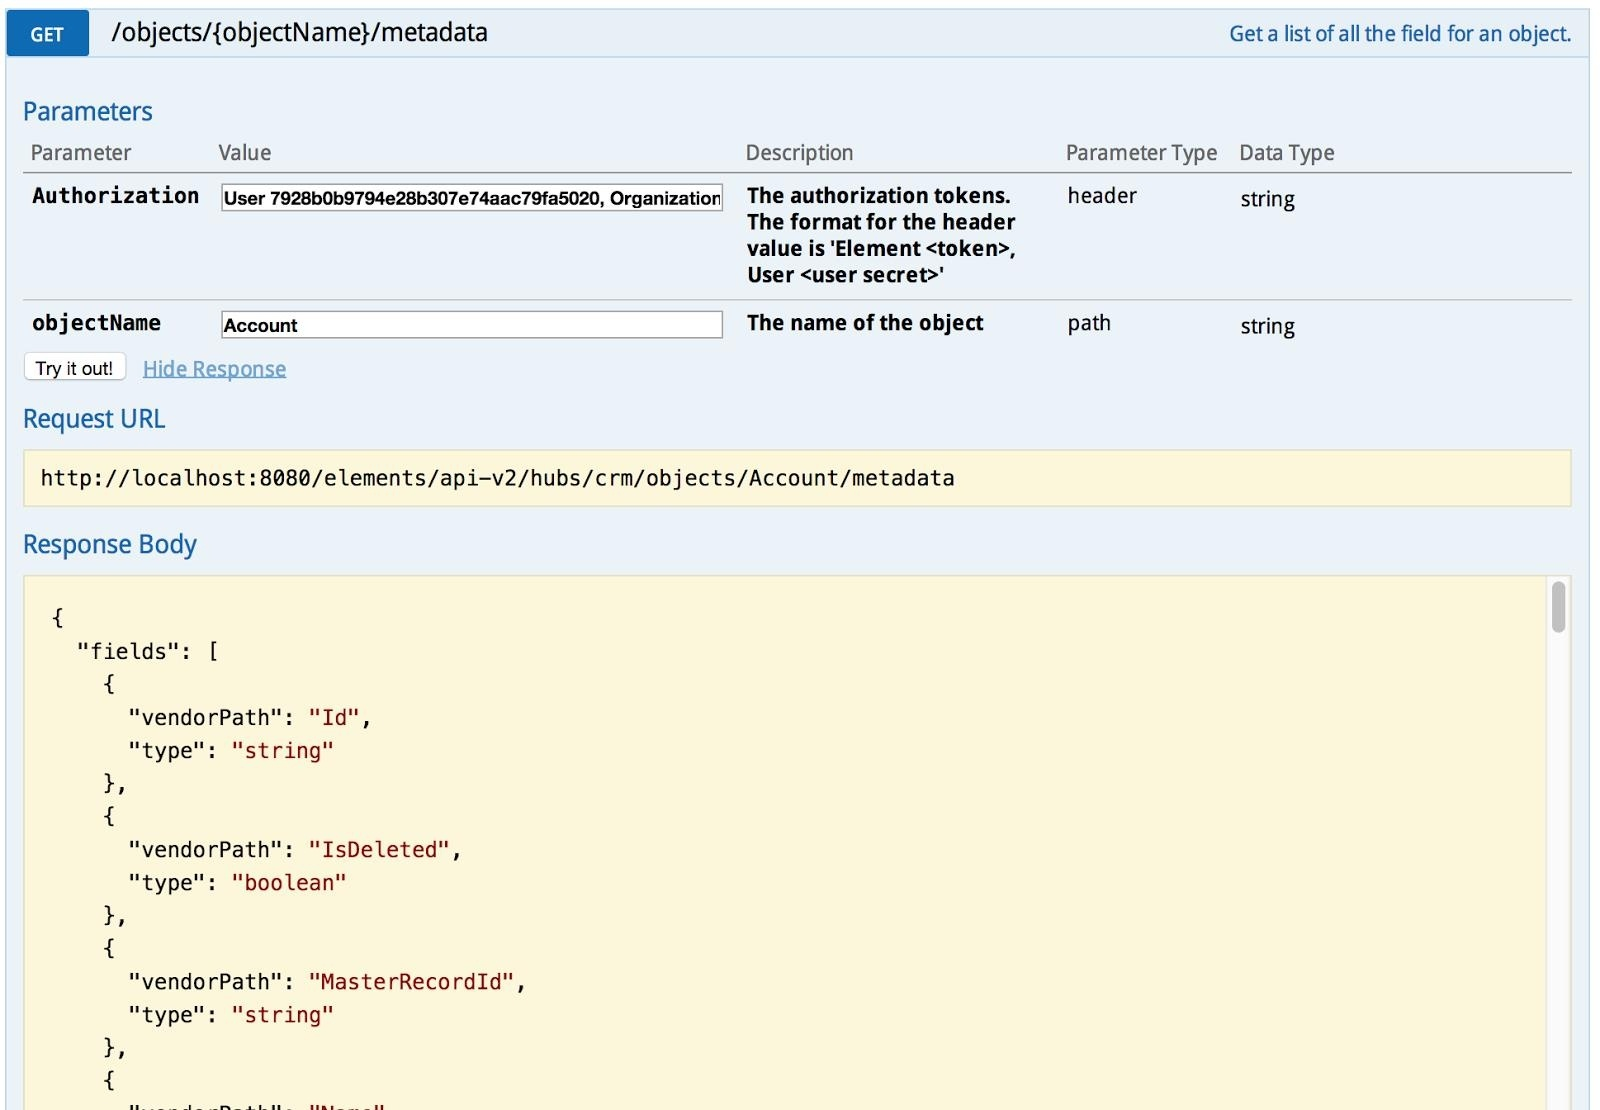 Retrieve the metadata for an object: call the /objects/{objectName}/metadata API